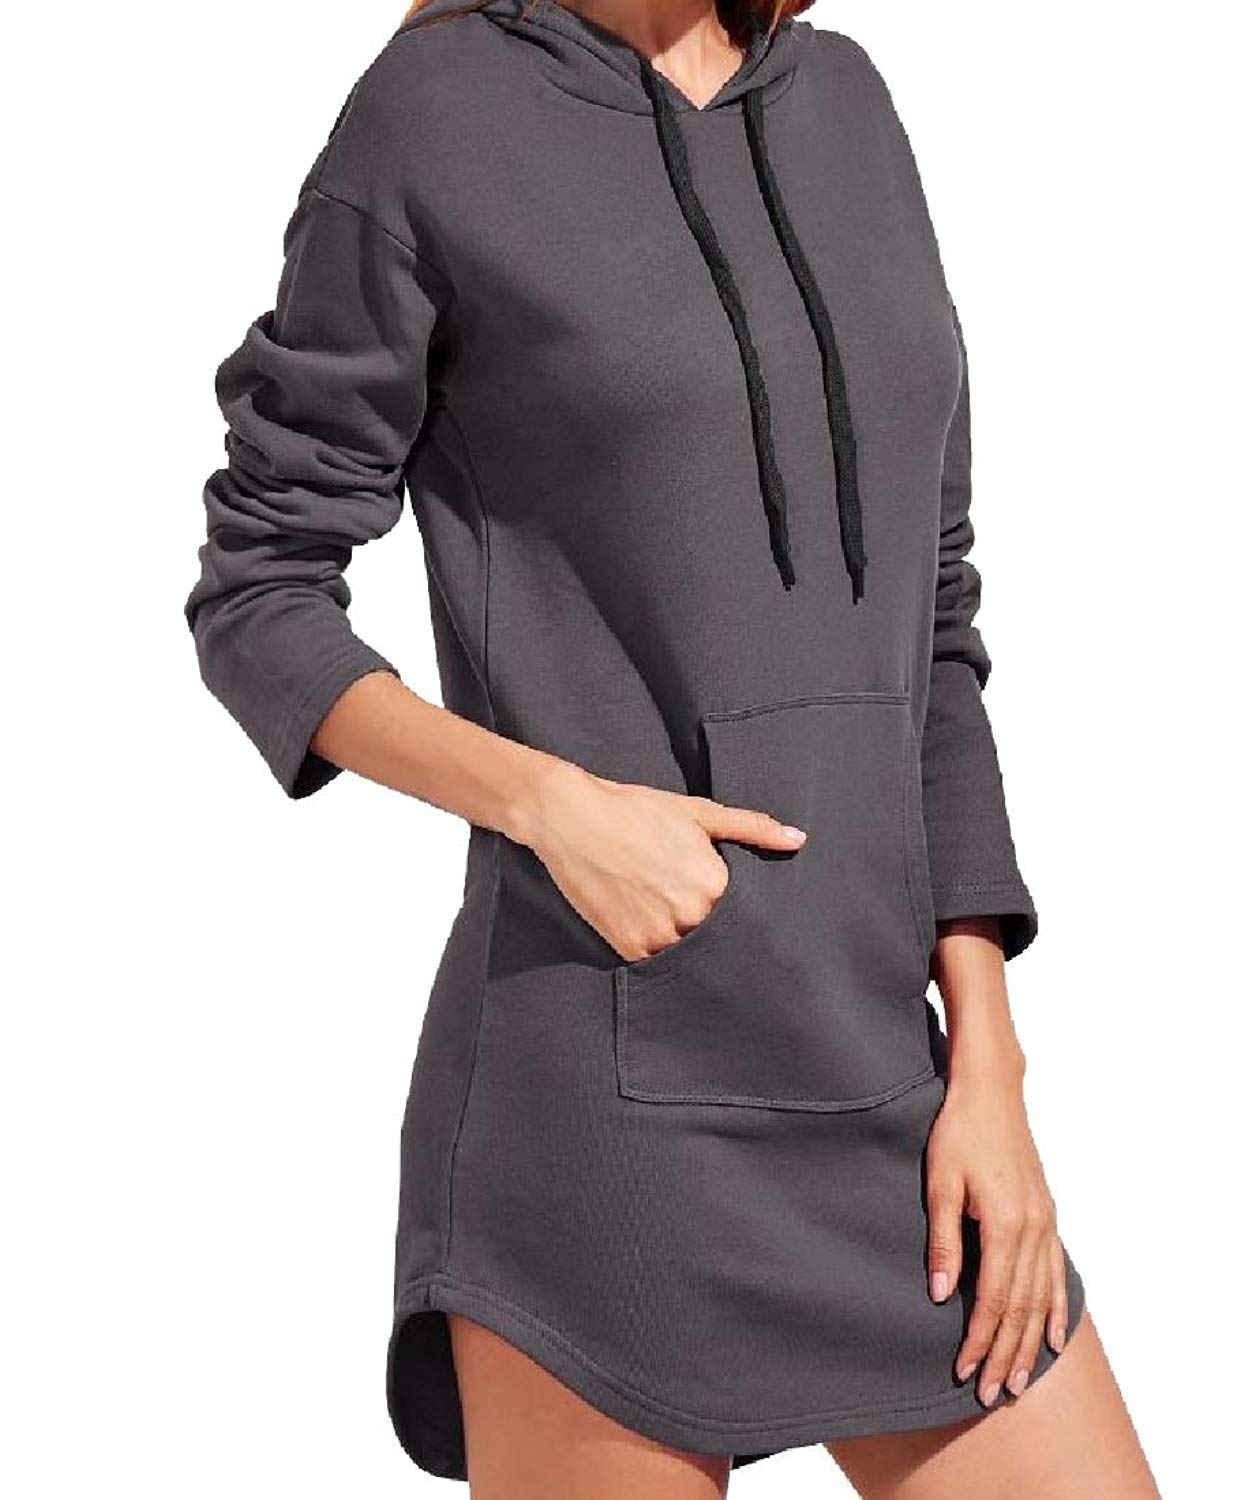 Zimaes-Women Pure Color Hooded All-Match Mid-Length Tracksuit Top